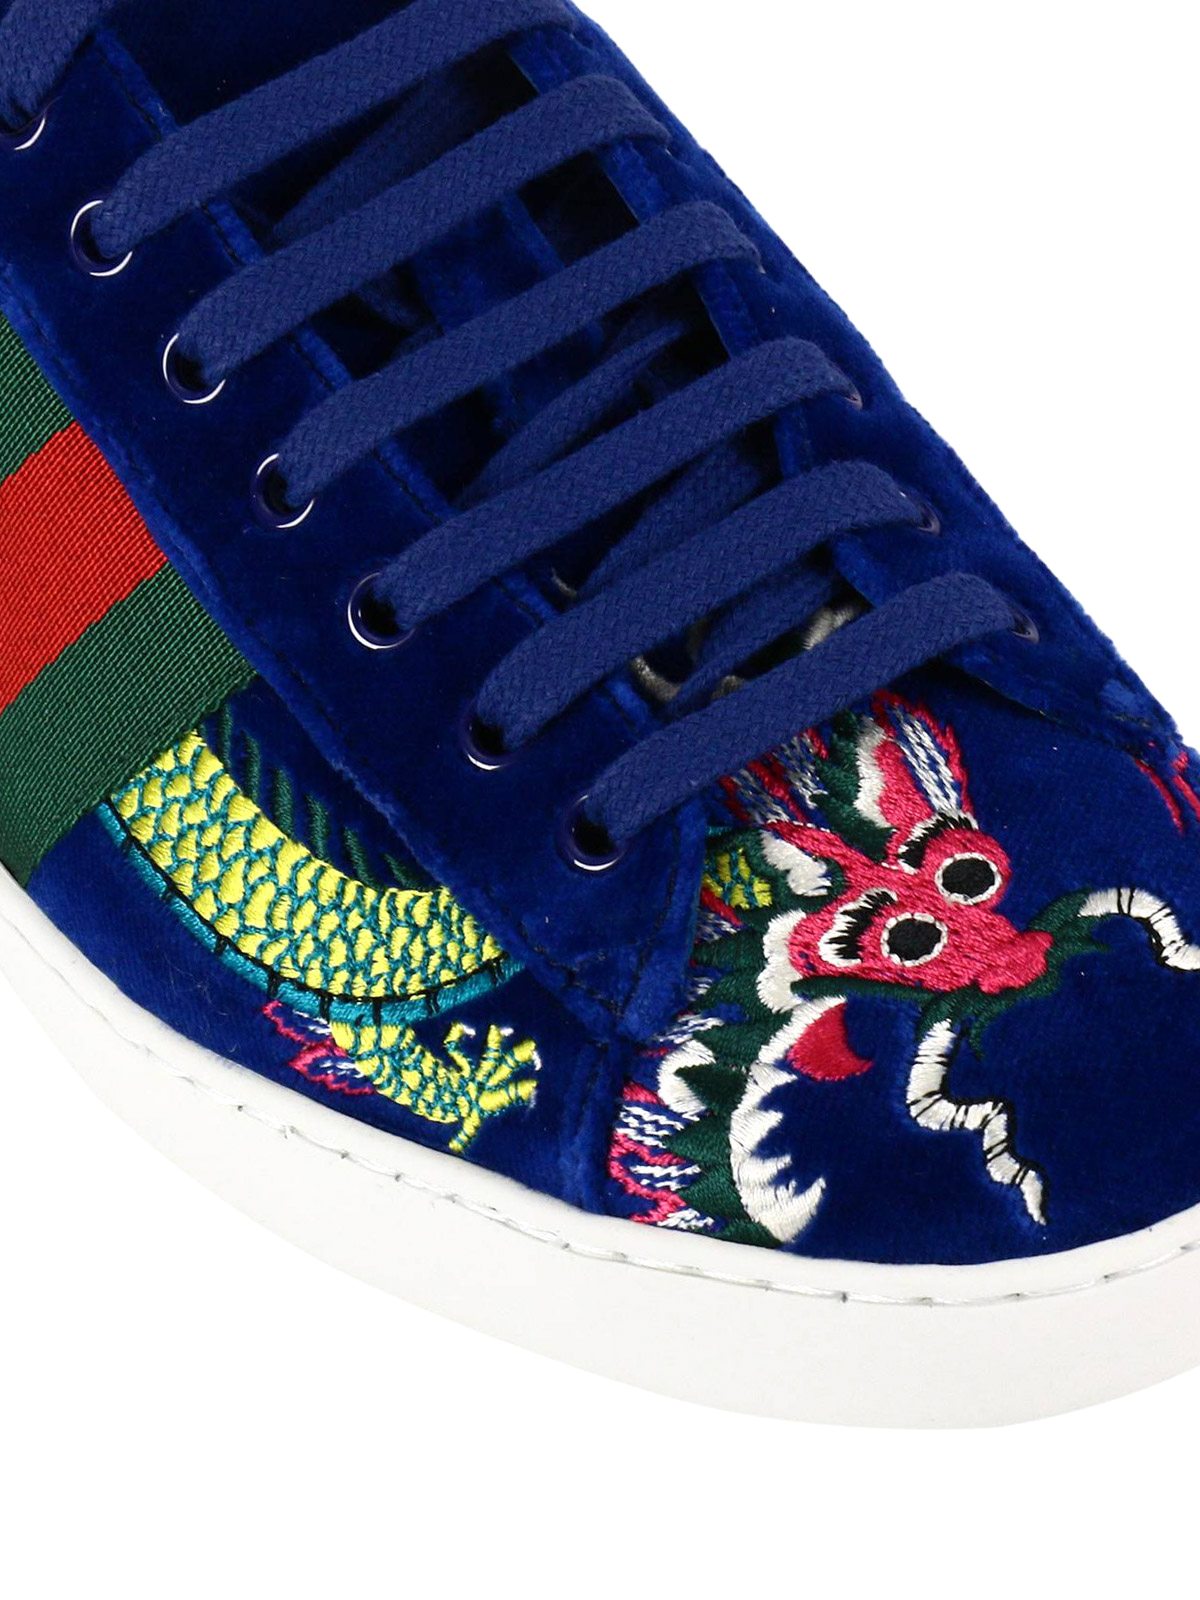 b8903961857 Gucci - Ace embroidered velvet sneakers - trainers - 473756 FASJ0 4064